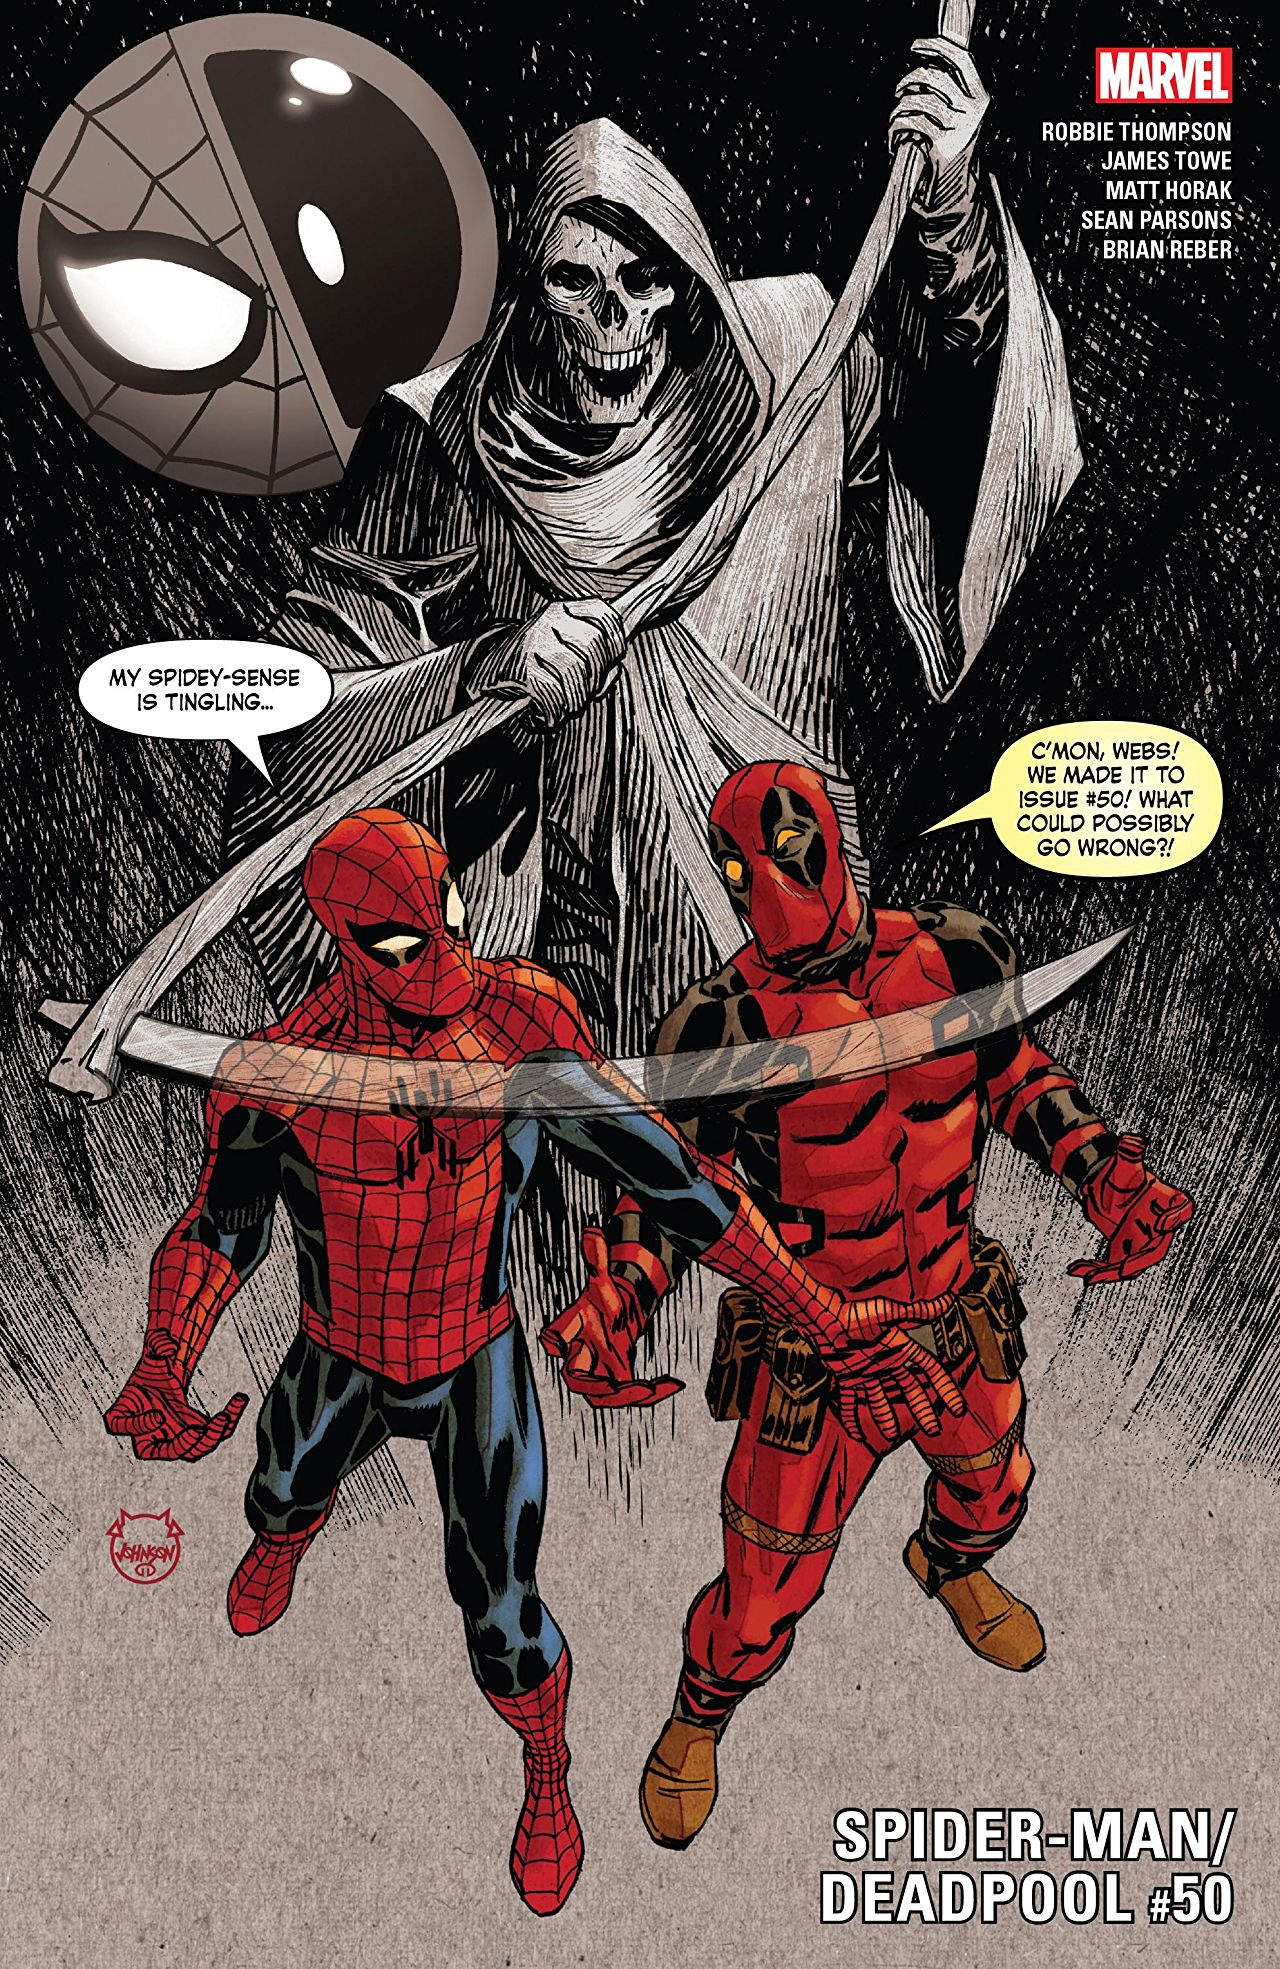 Marvel Preview: Spider-Man/Deadpool #50